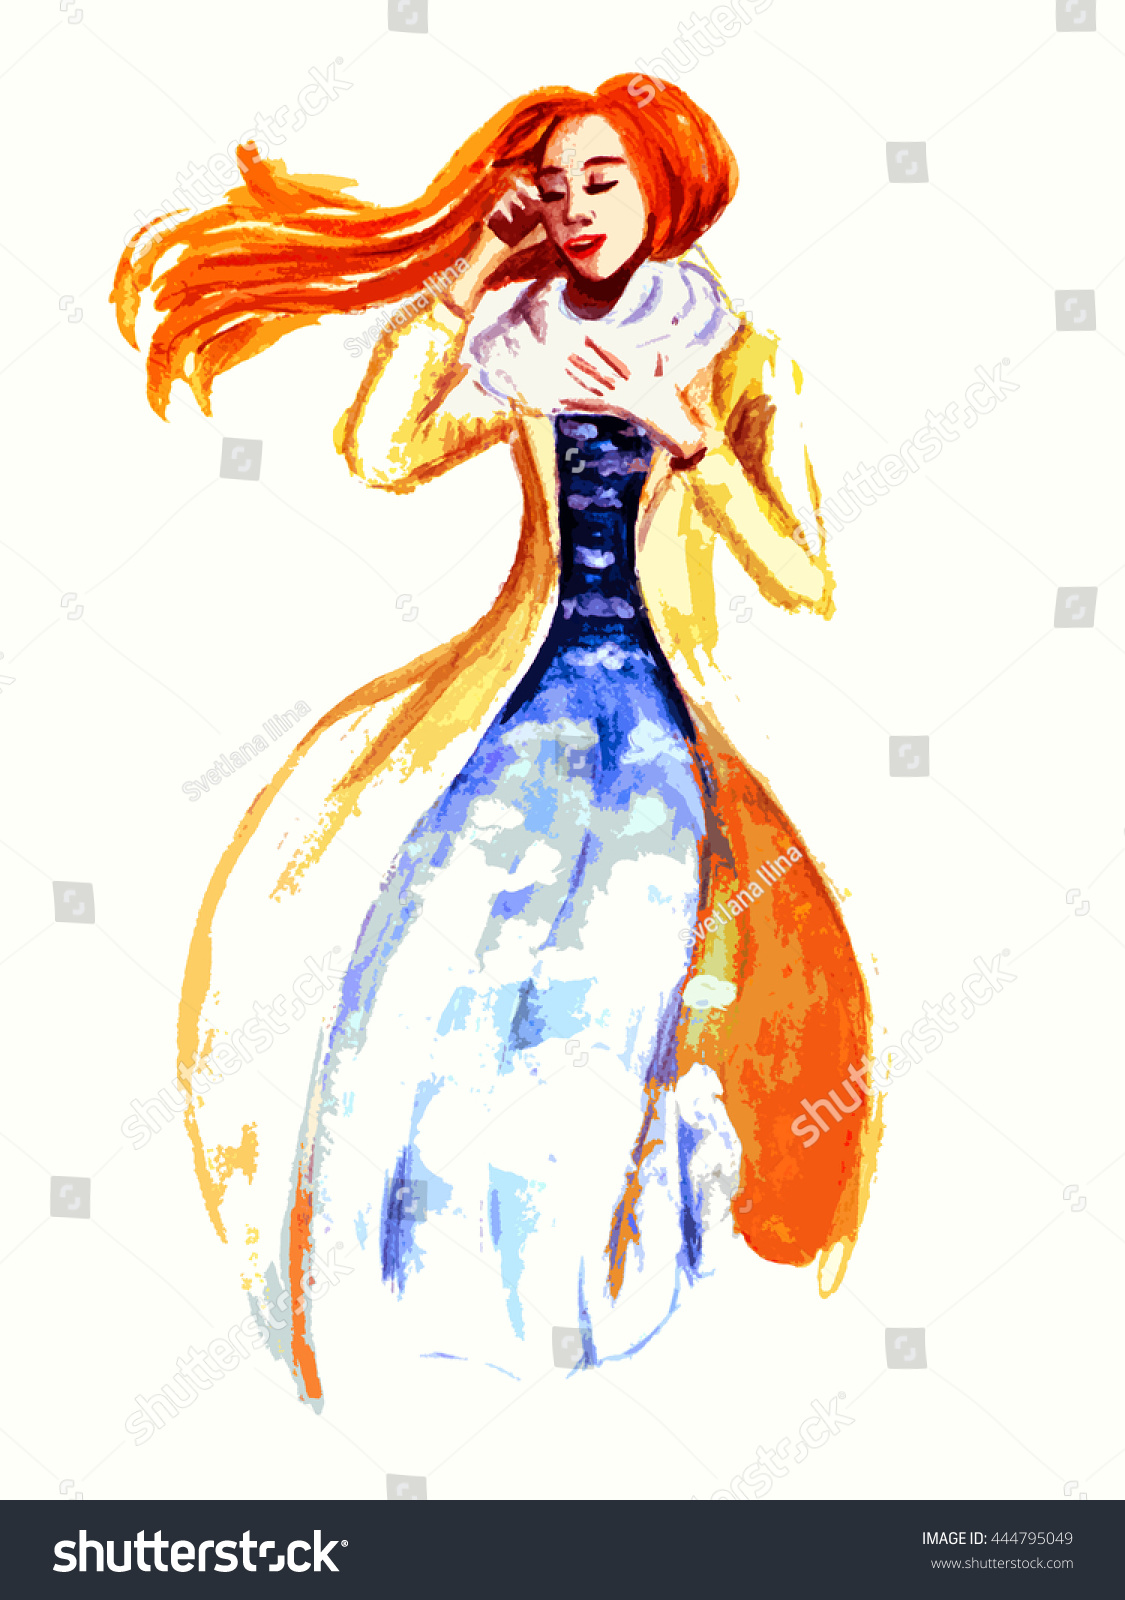 Hand Drawn Watercolor Fashion Sketches Abstract Stock Illustration 444795049 - Shutterstock